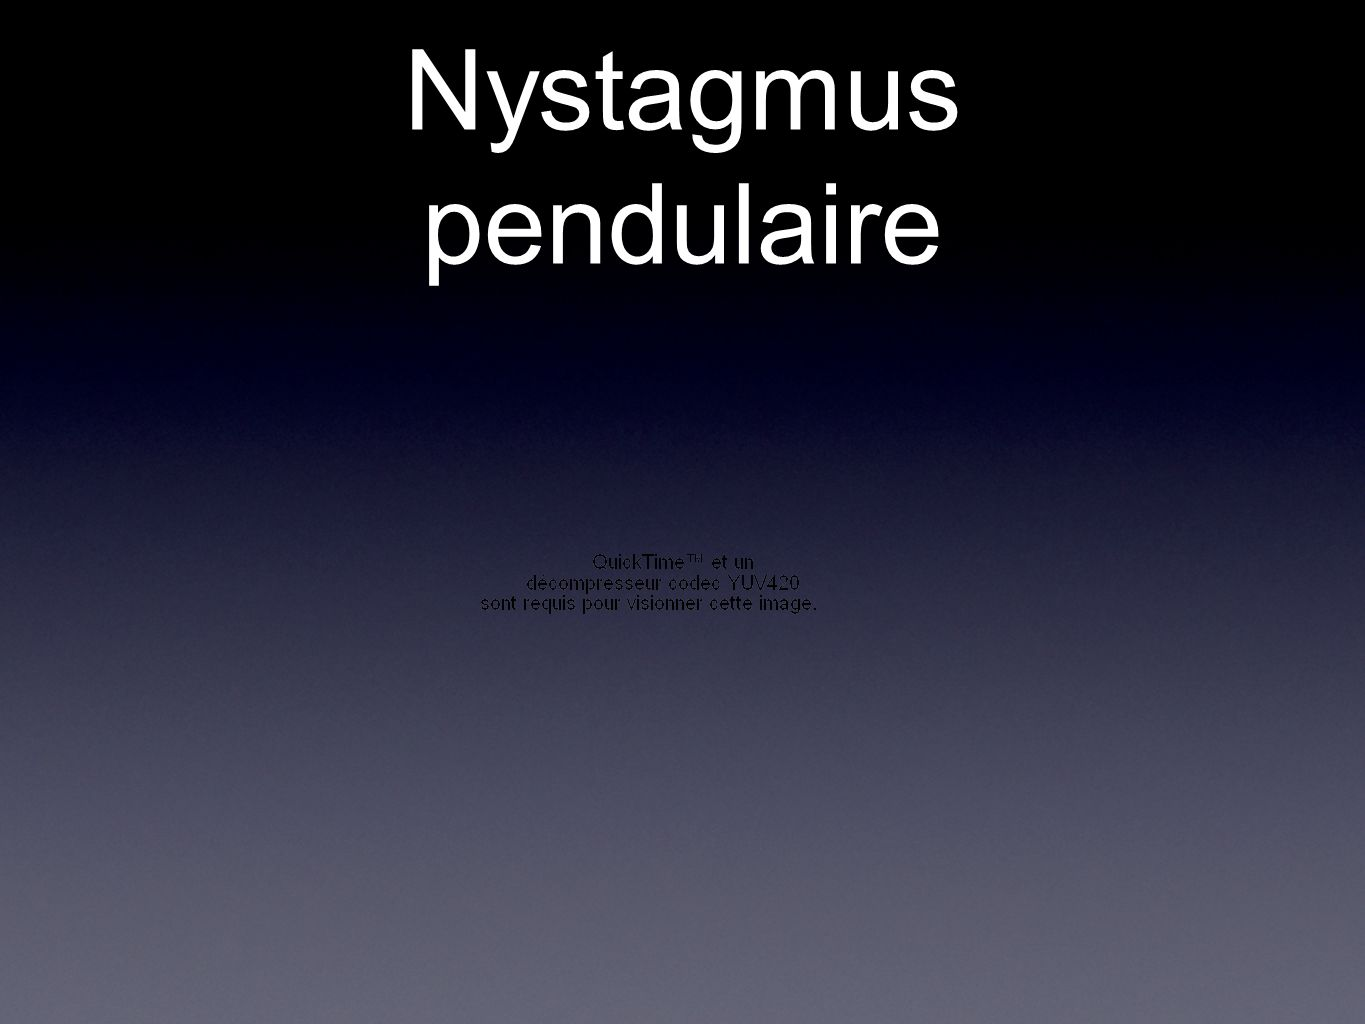 Nystagmus pendulaire